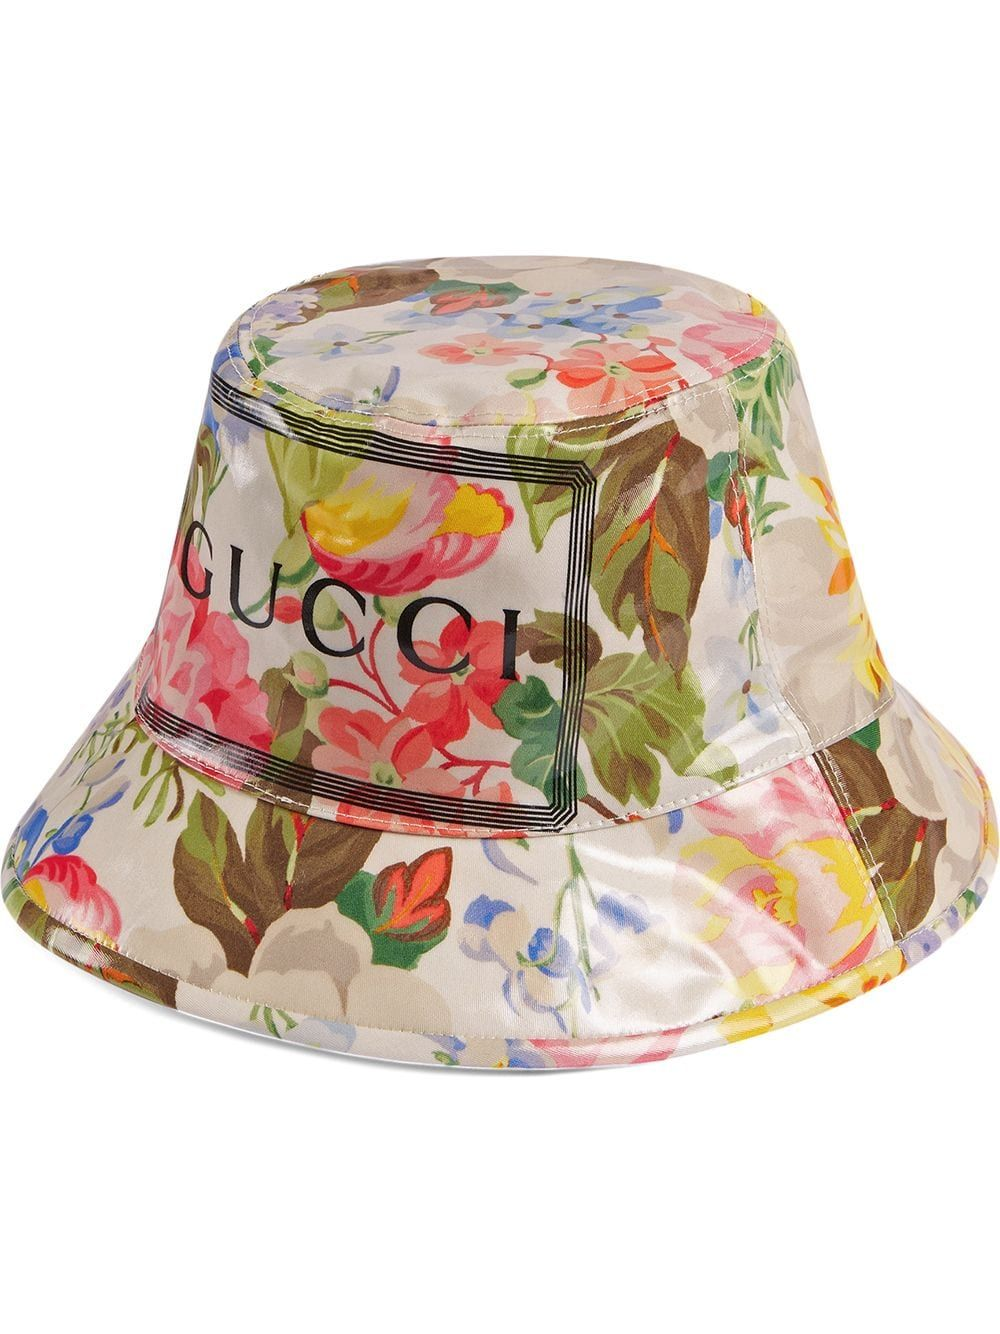 d69d48b12 Gucci Fedora with floral print - White in 2019 | Products | Gucci ...